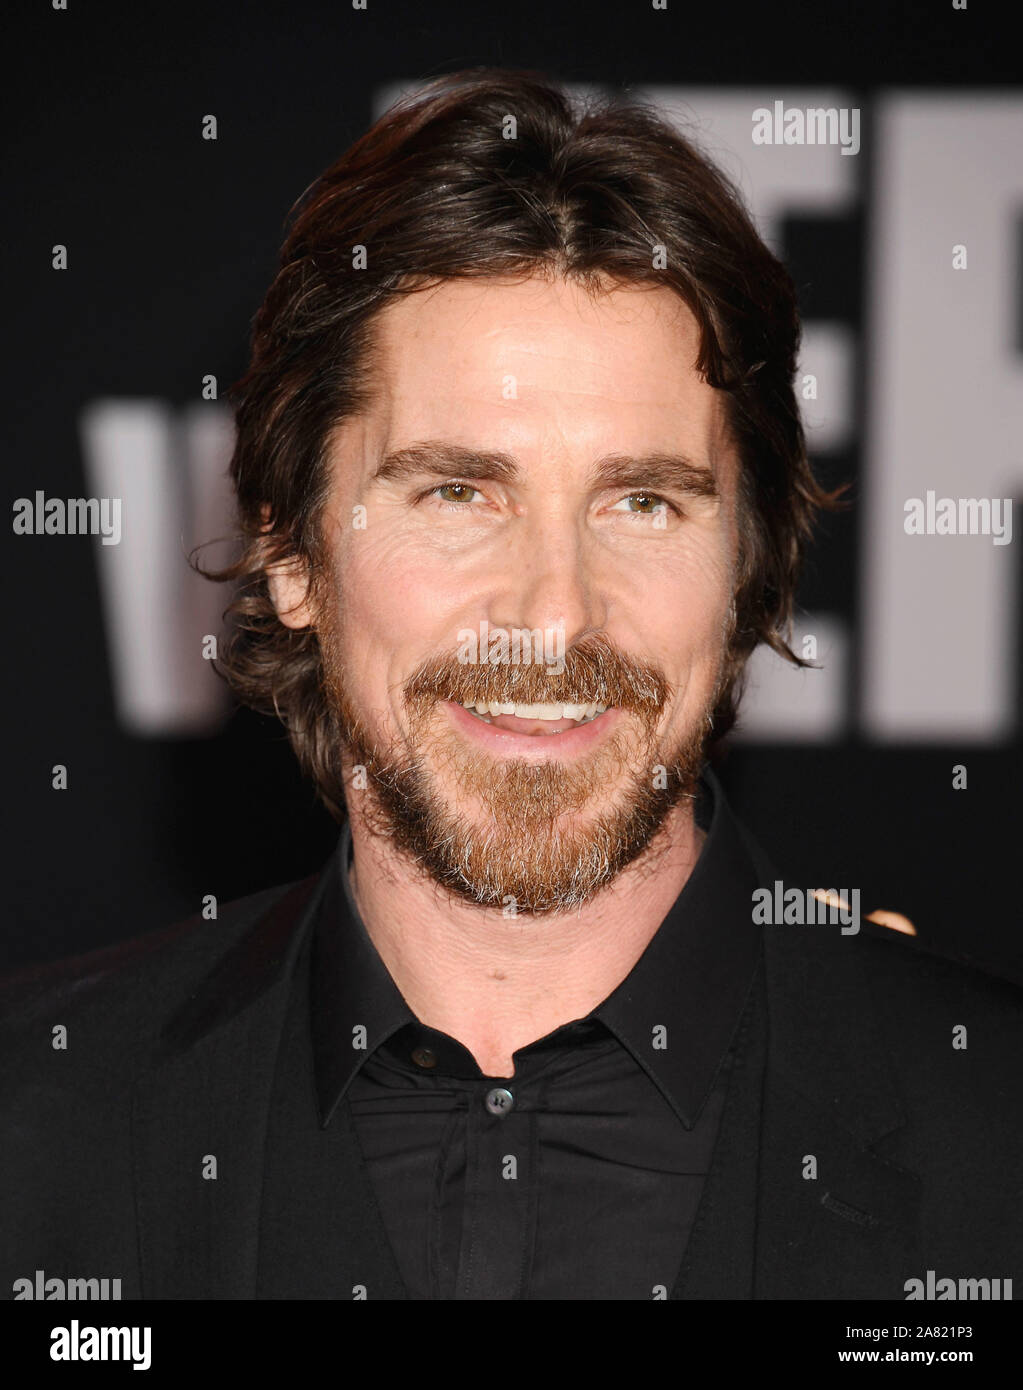 Hollywood Ca November 04 Christian Bale Attends The Premiere Of Fox S Ford V Ferrari At Tcl Chinese Theatre On November 04 2019 In Hollywood California Stock Photo Alamy